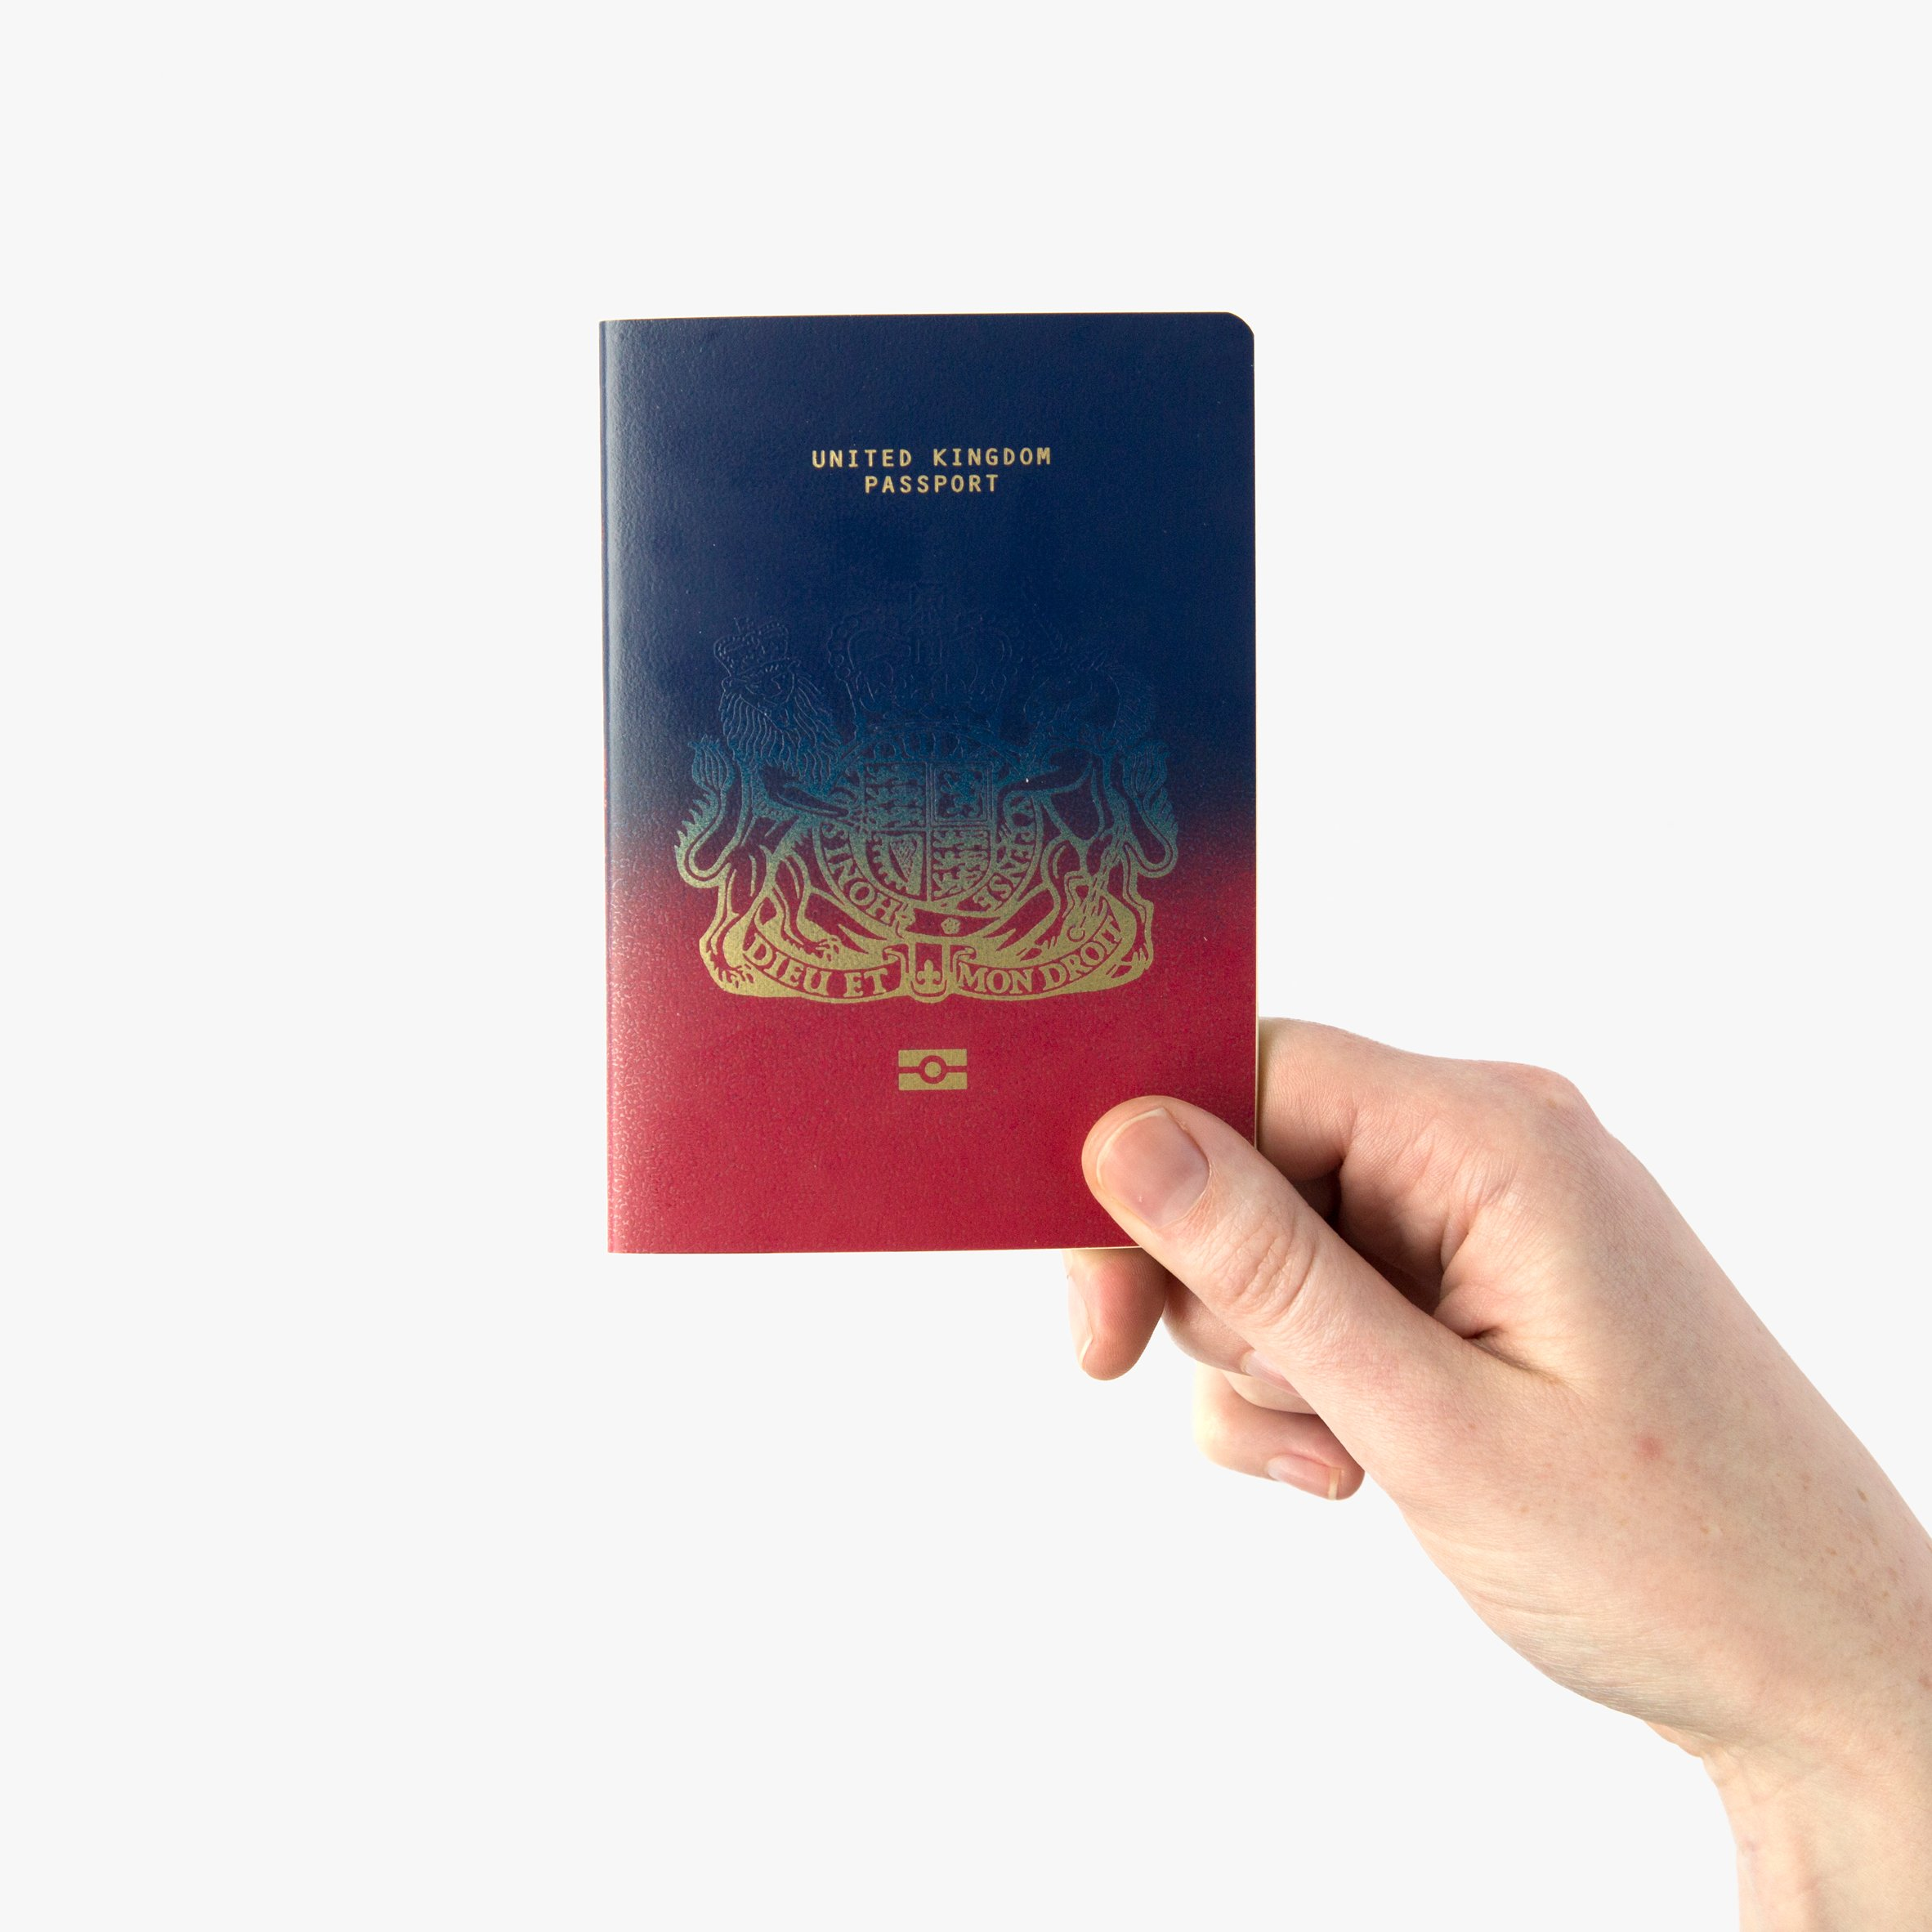 Watch our talk on the politics of passport design live from the V&A